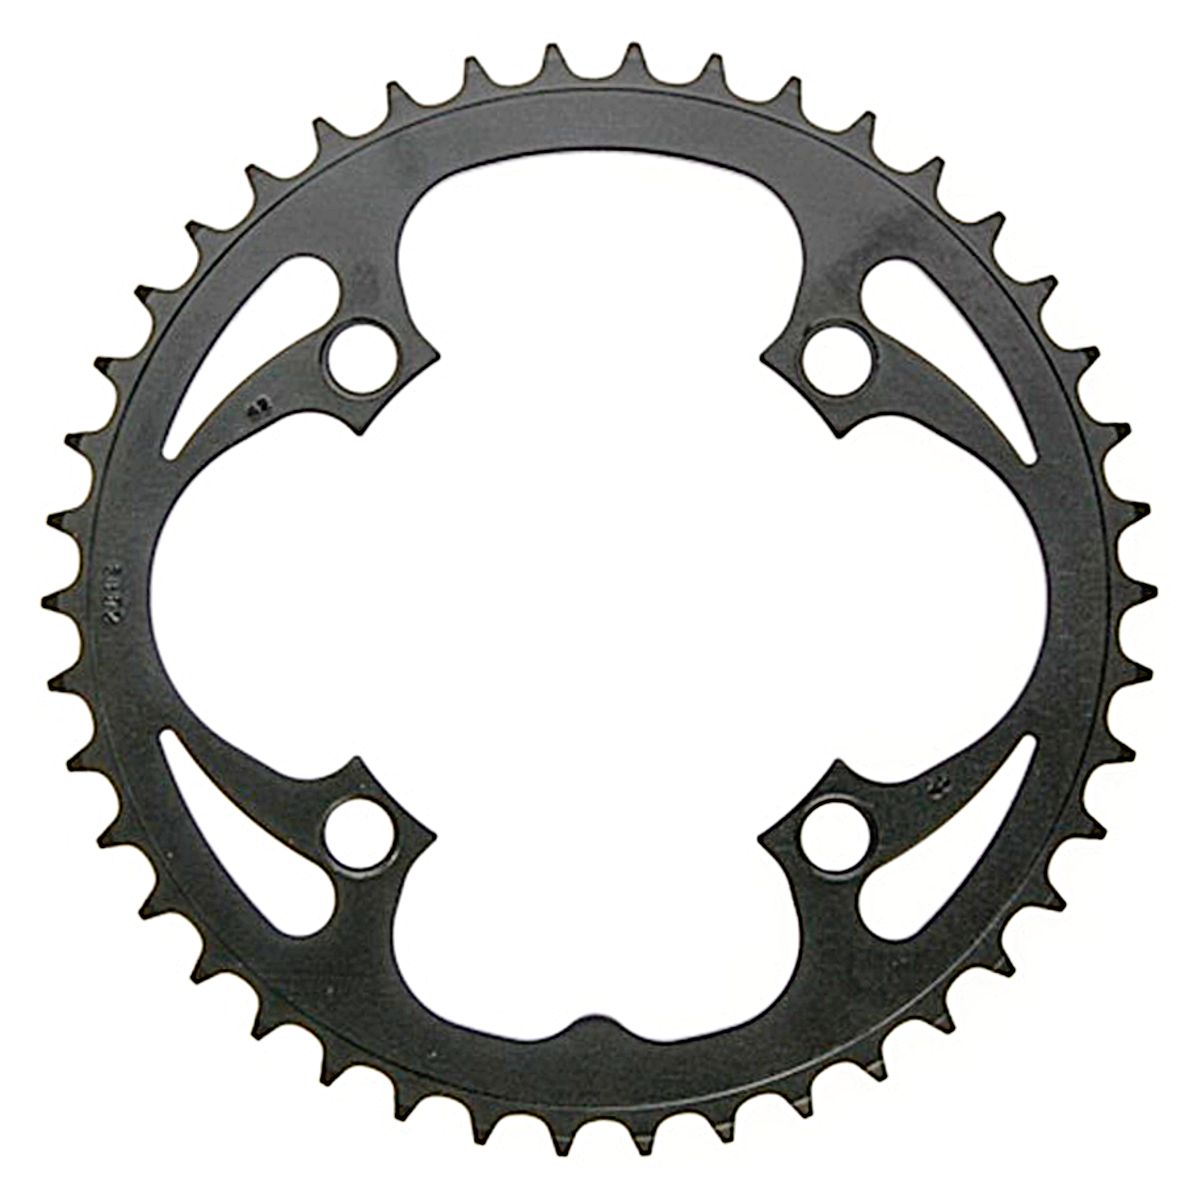 Singlespeed 42-tooth chainring